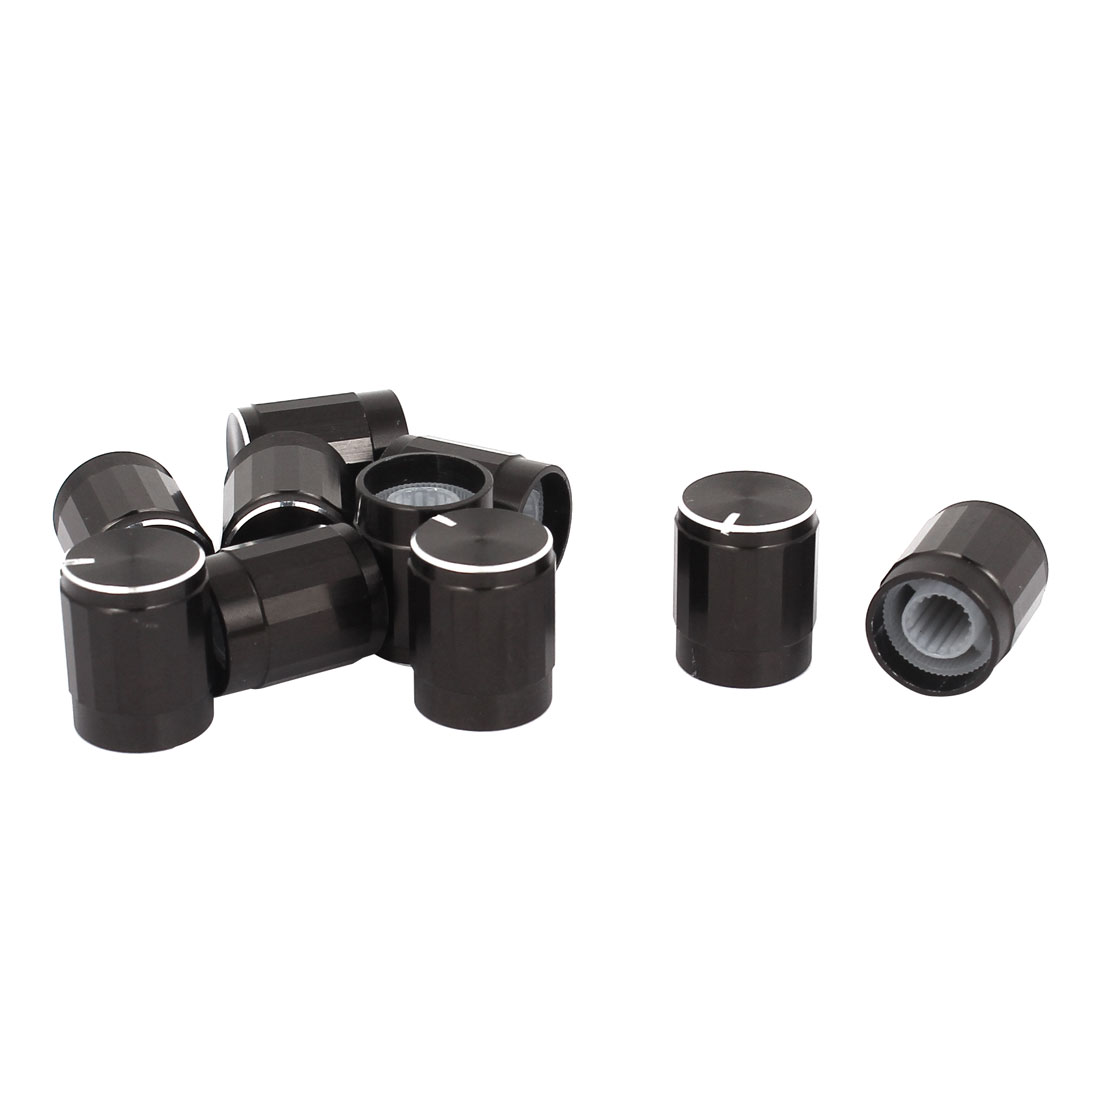 10PCS 6mm Shaft Hole 13x16mm Knob Cap Black for Rotary Potentiometer